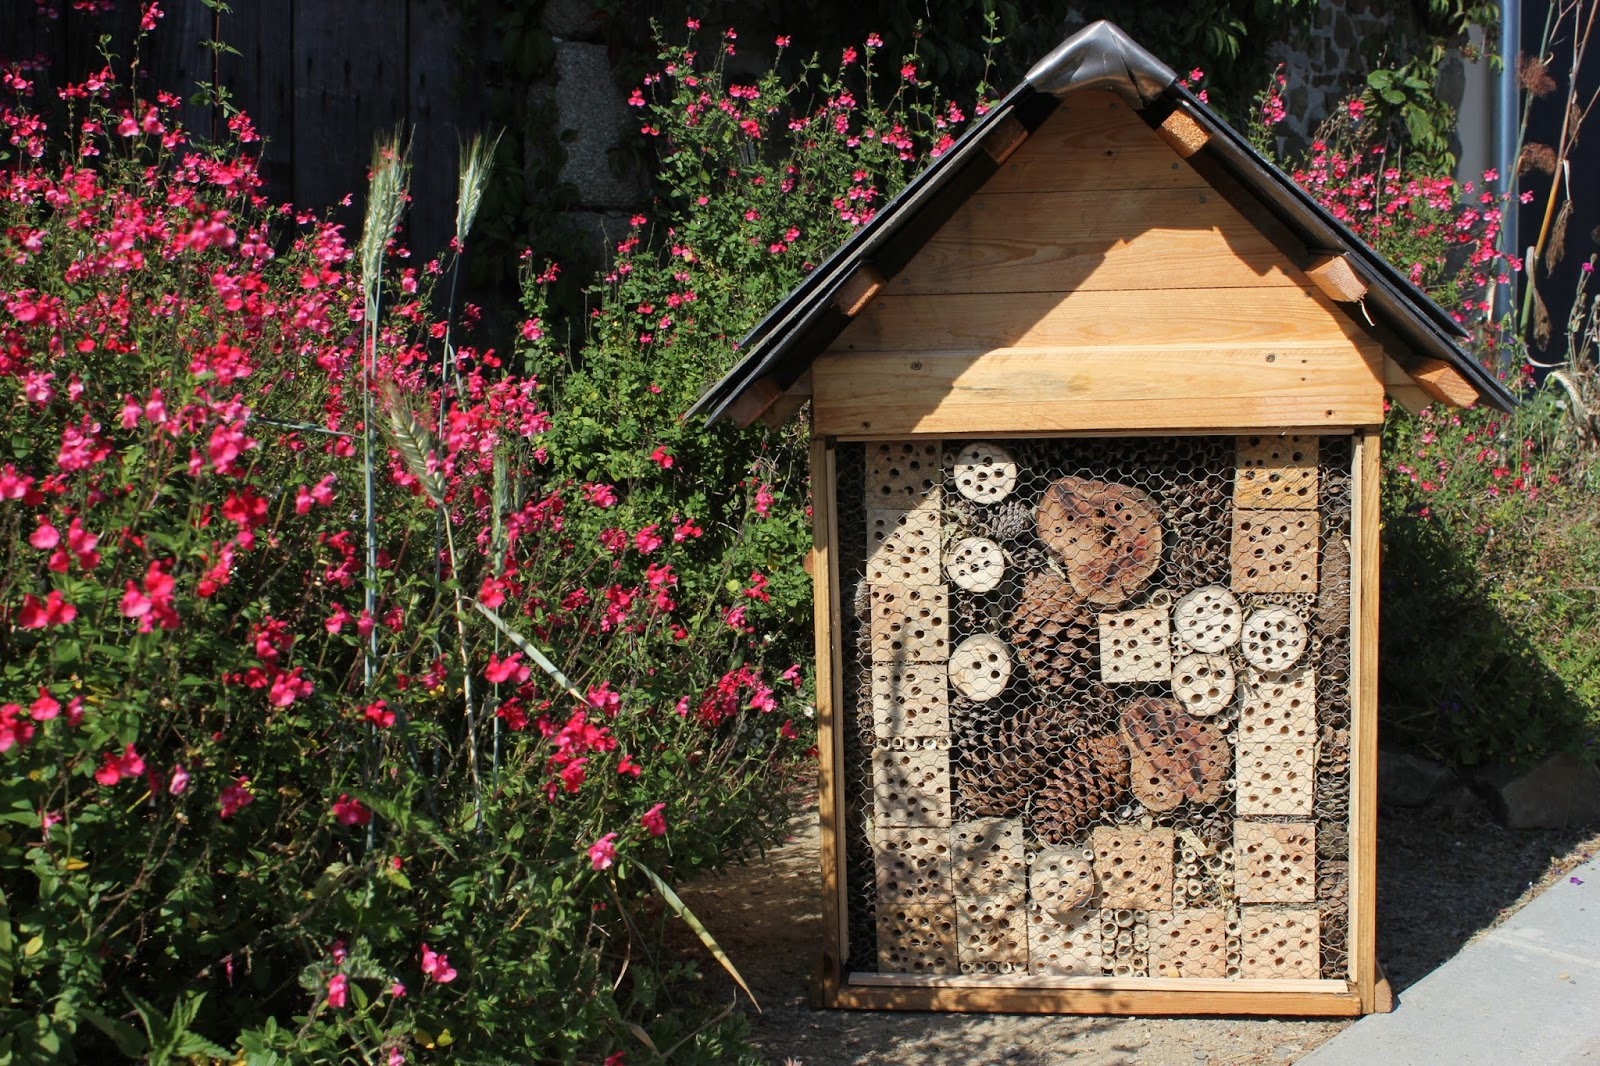 DIY insect hotel as a utility box cover